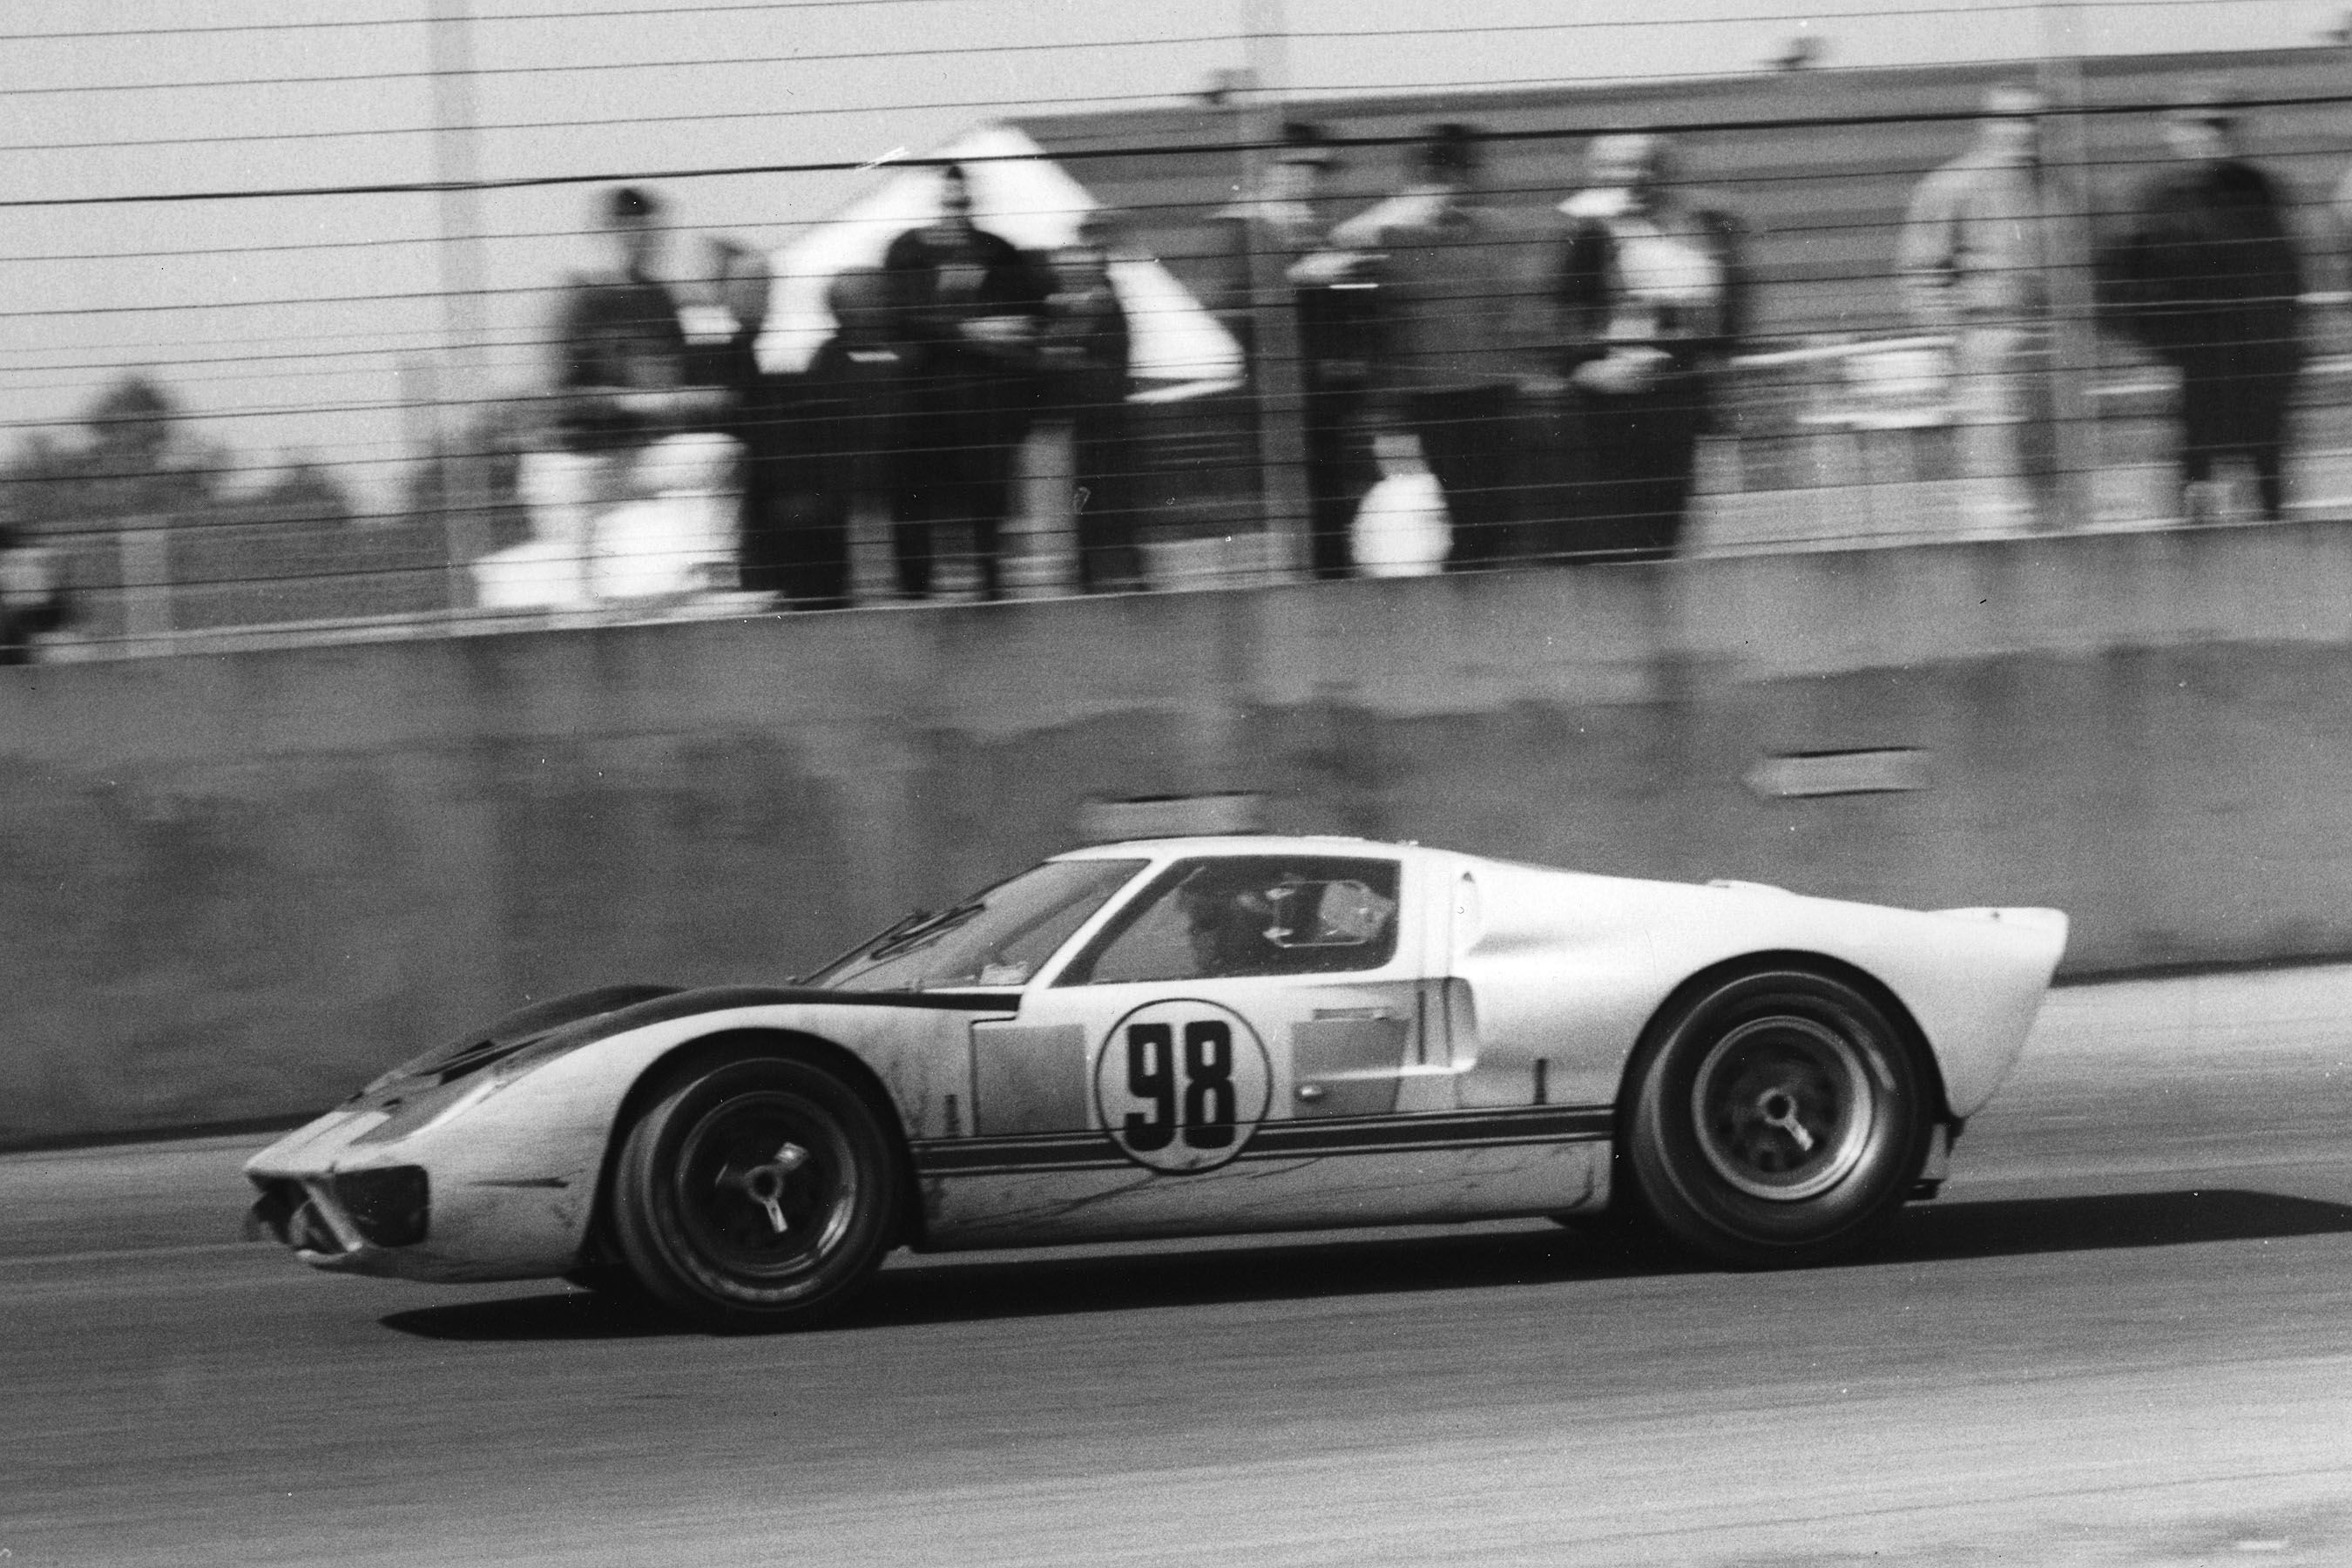 Winner Of The 1966 Daytona Continental 98 Ford Gt40 Driven By